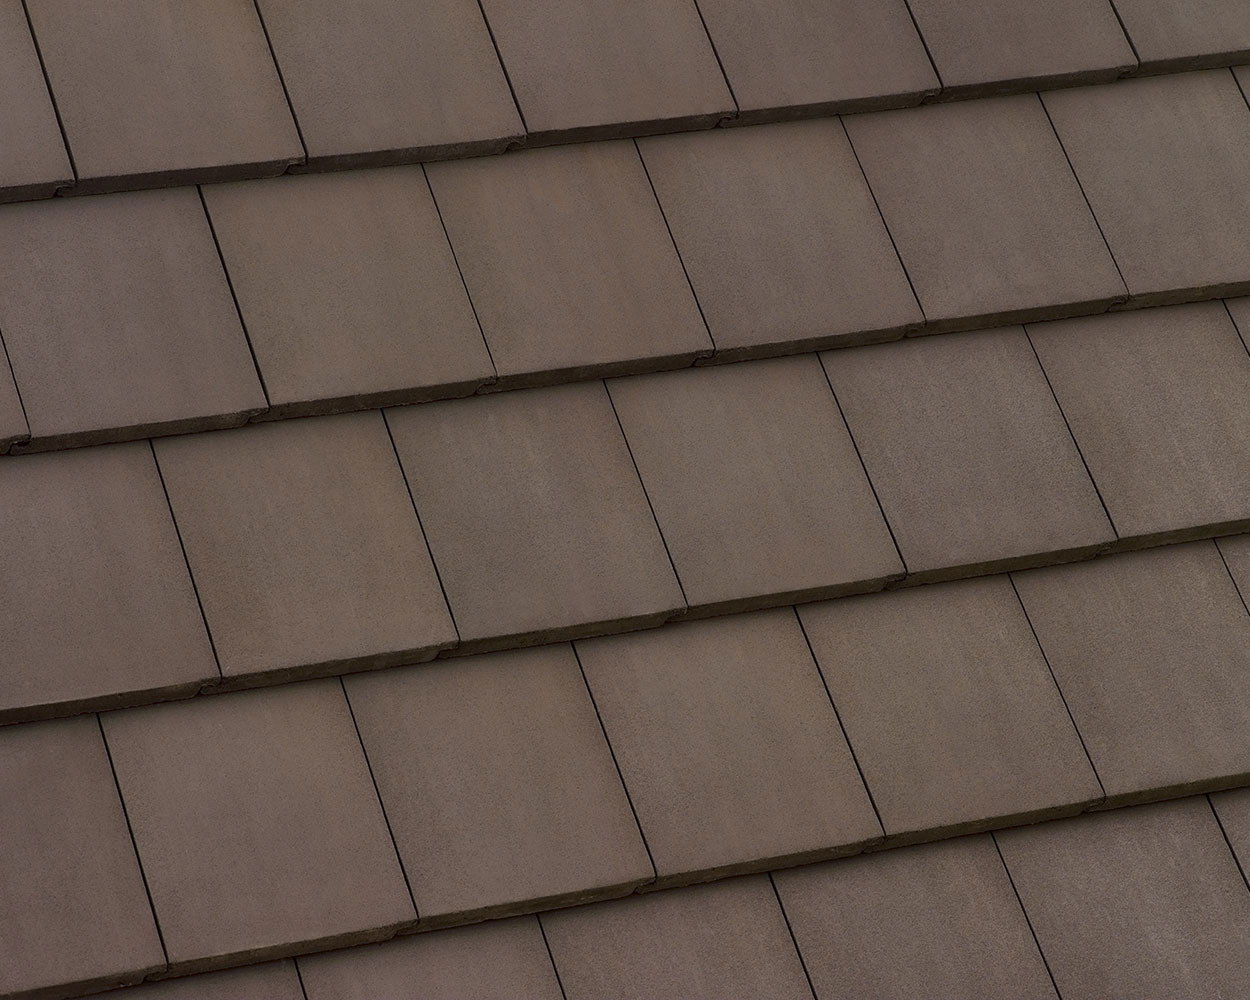 Cocoa tile roof color swatch